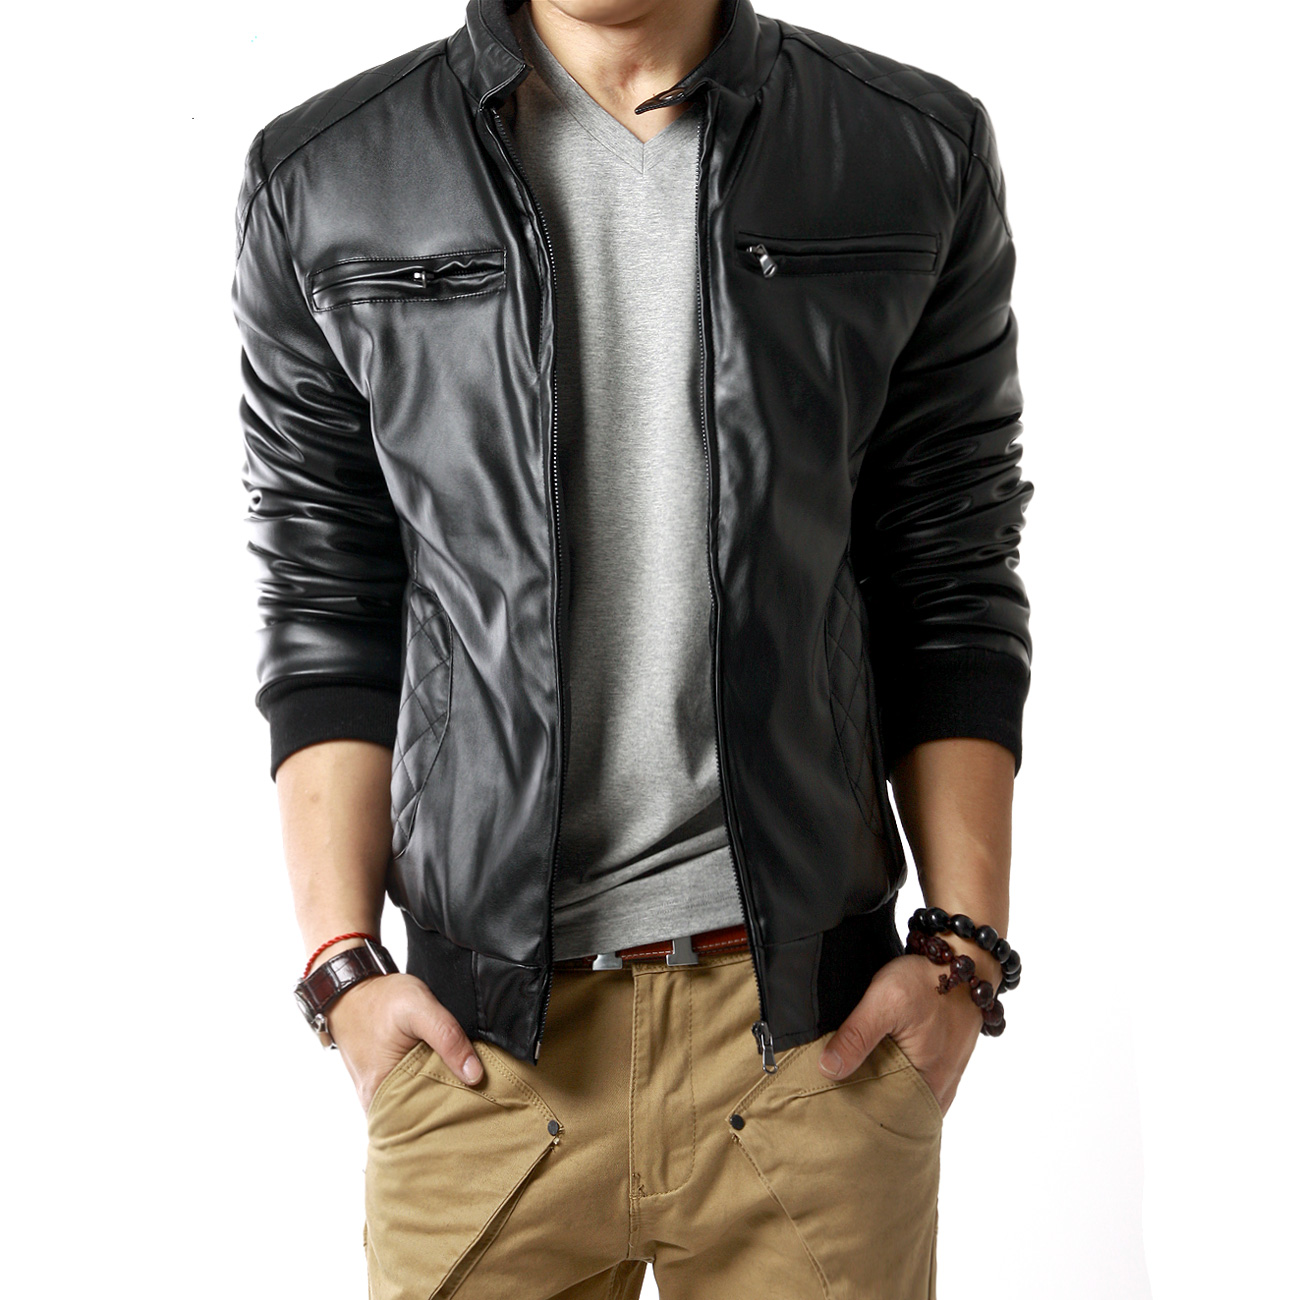 Best Leather Jackets For Men 3W0yOL